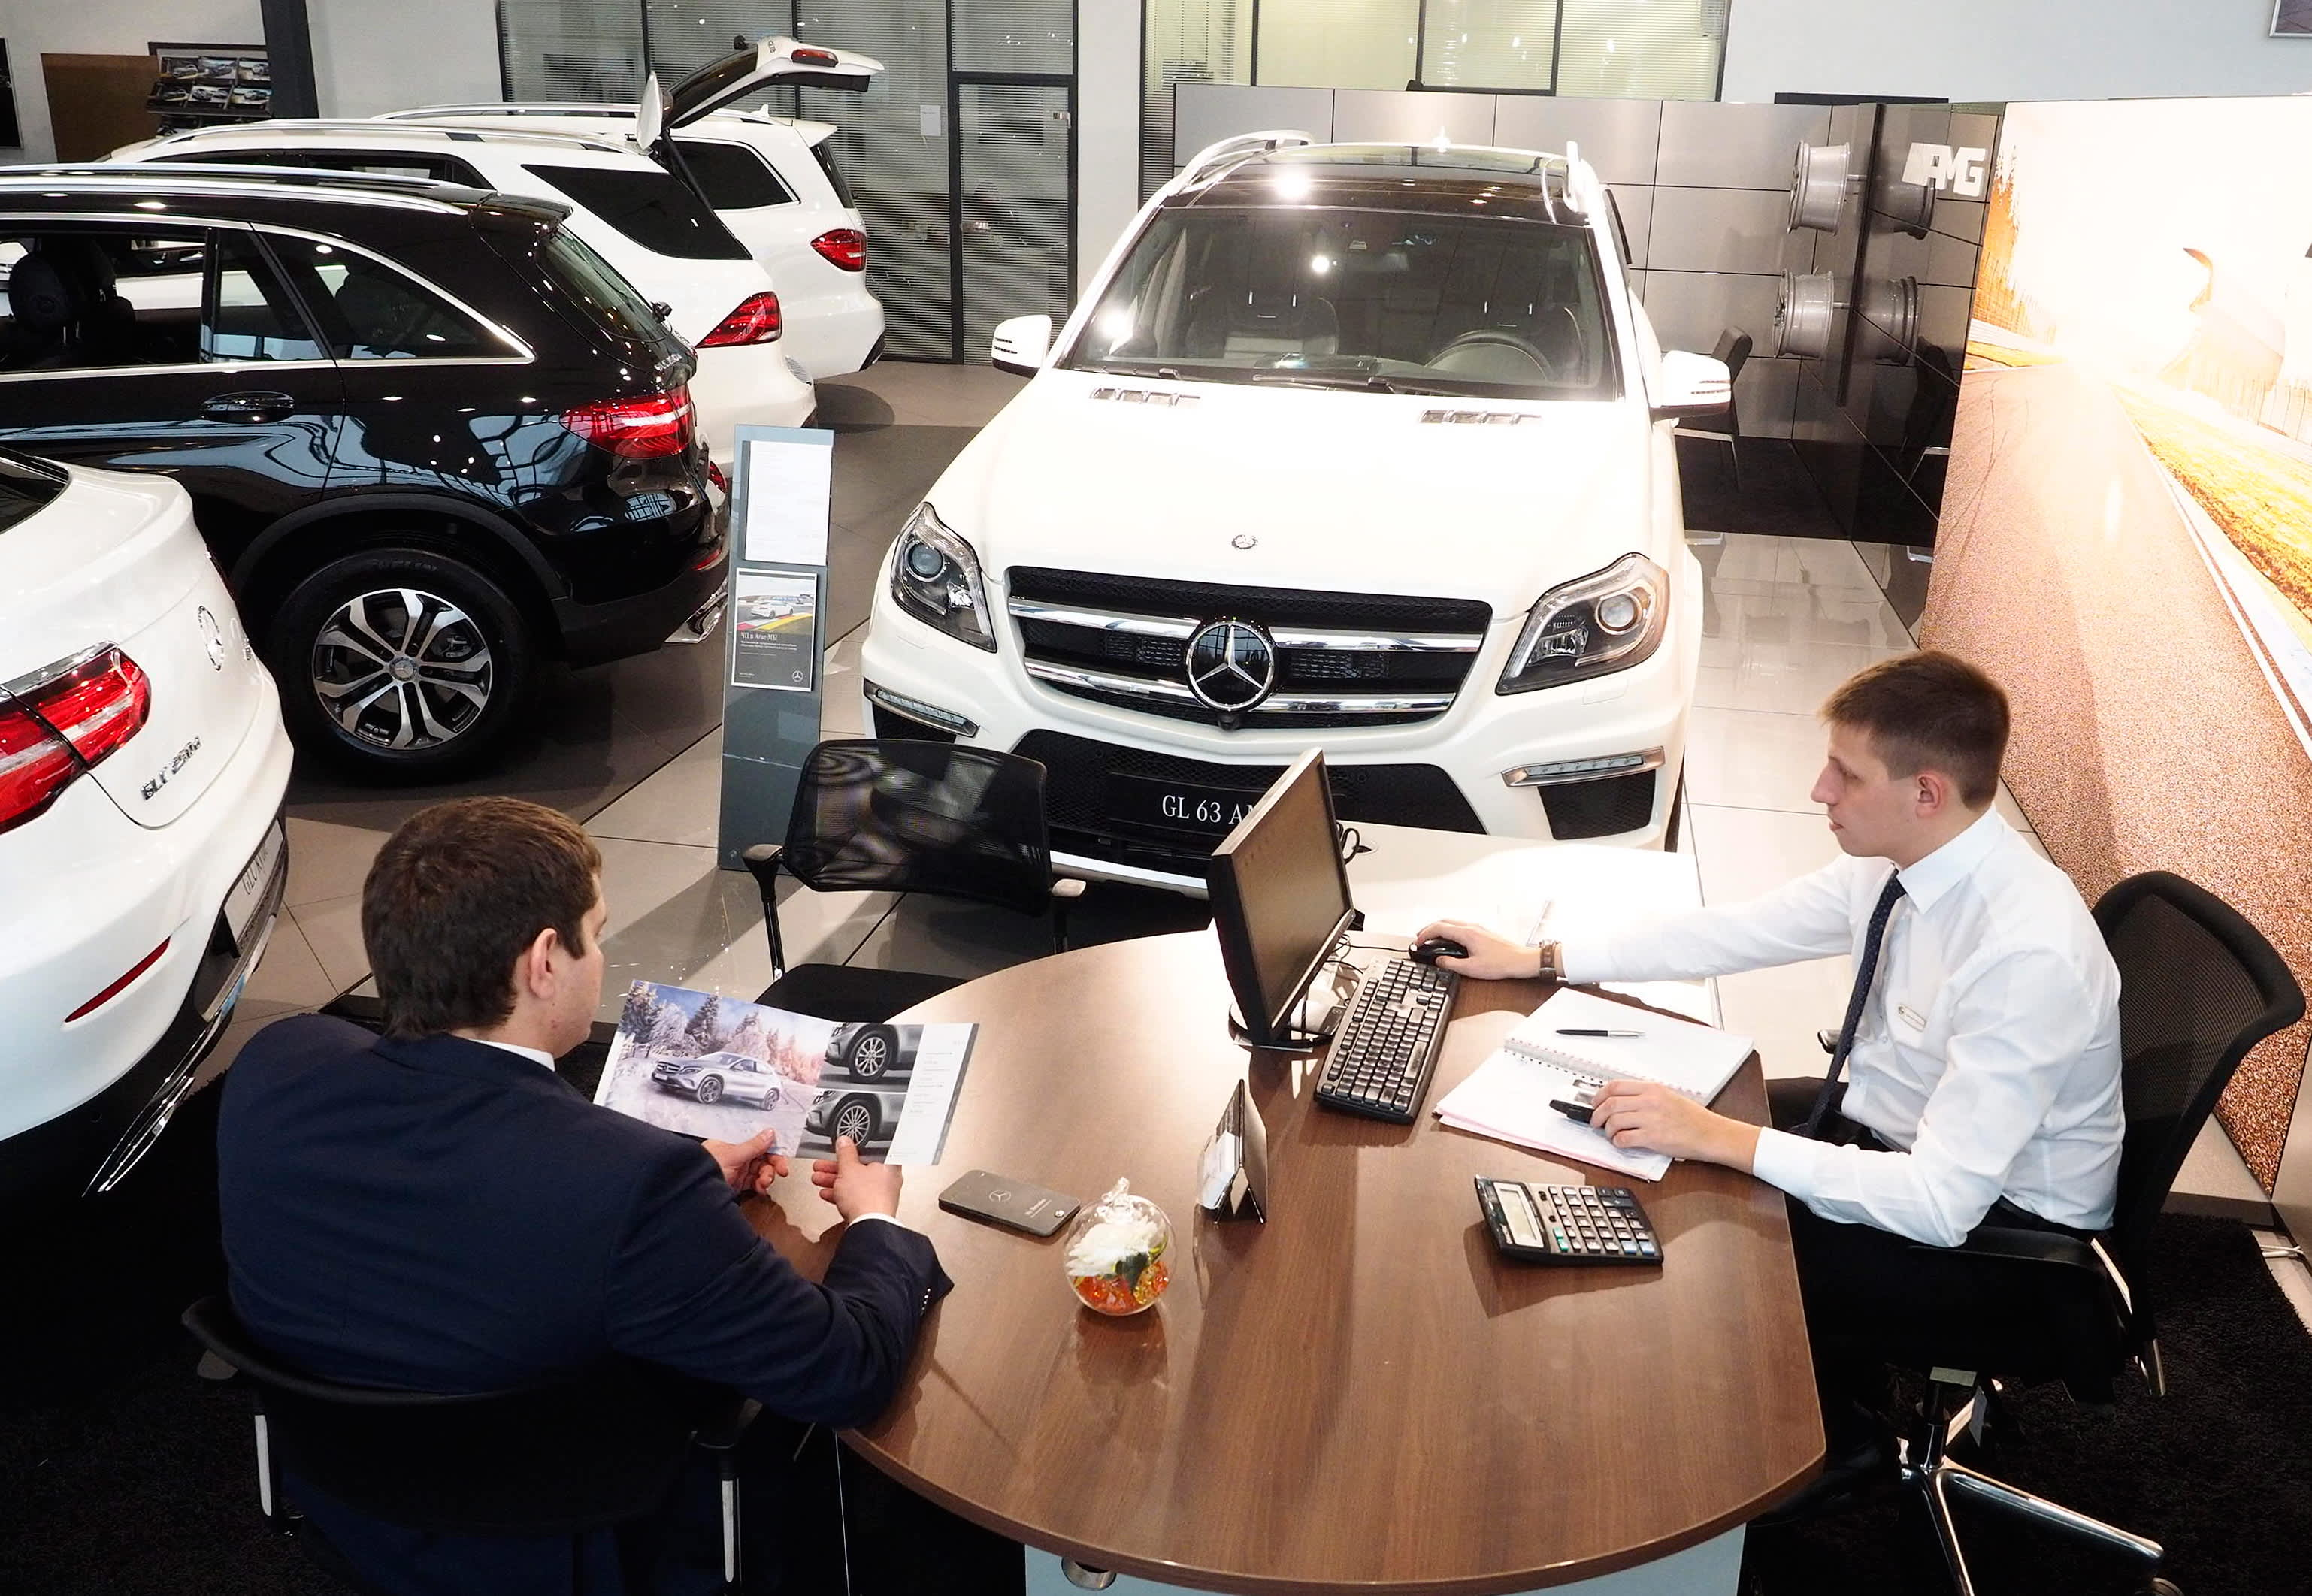 Former car salesman: Never say this 1 thing when negotiating a deal